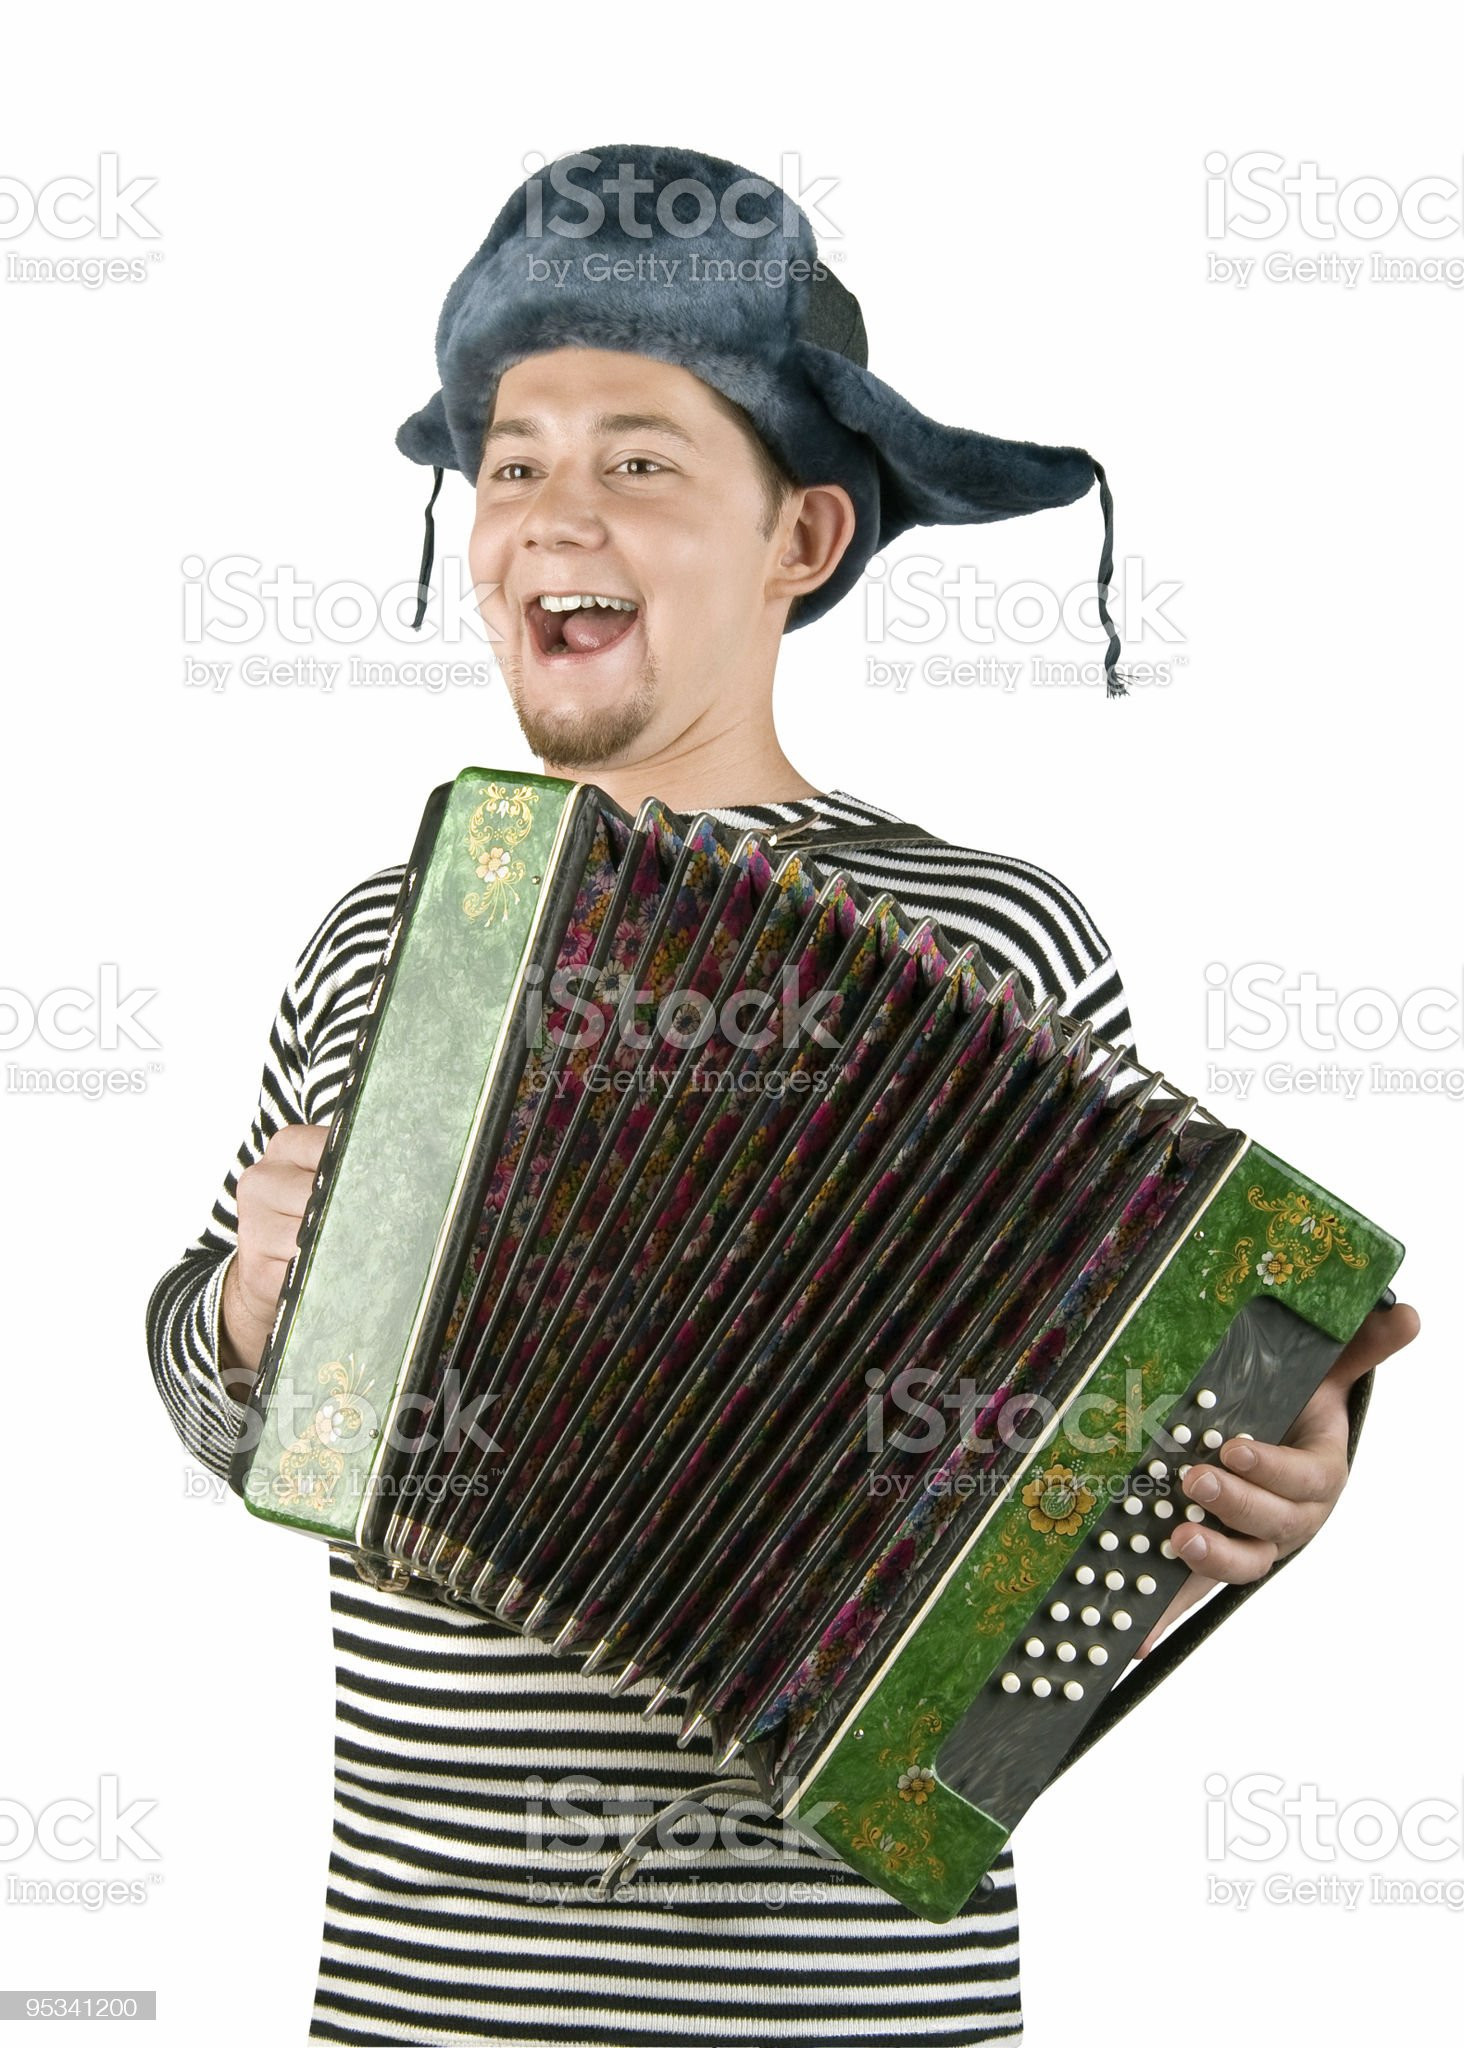 Russian man with accordion, isolated on white background royalty-free stock photo